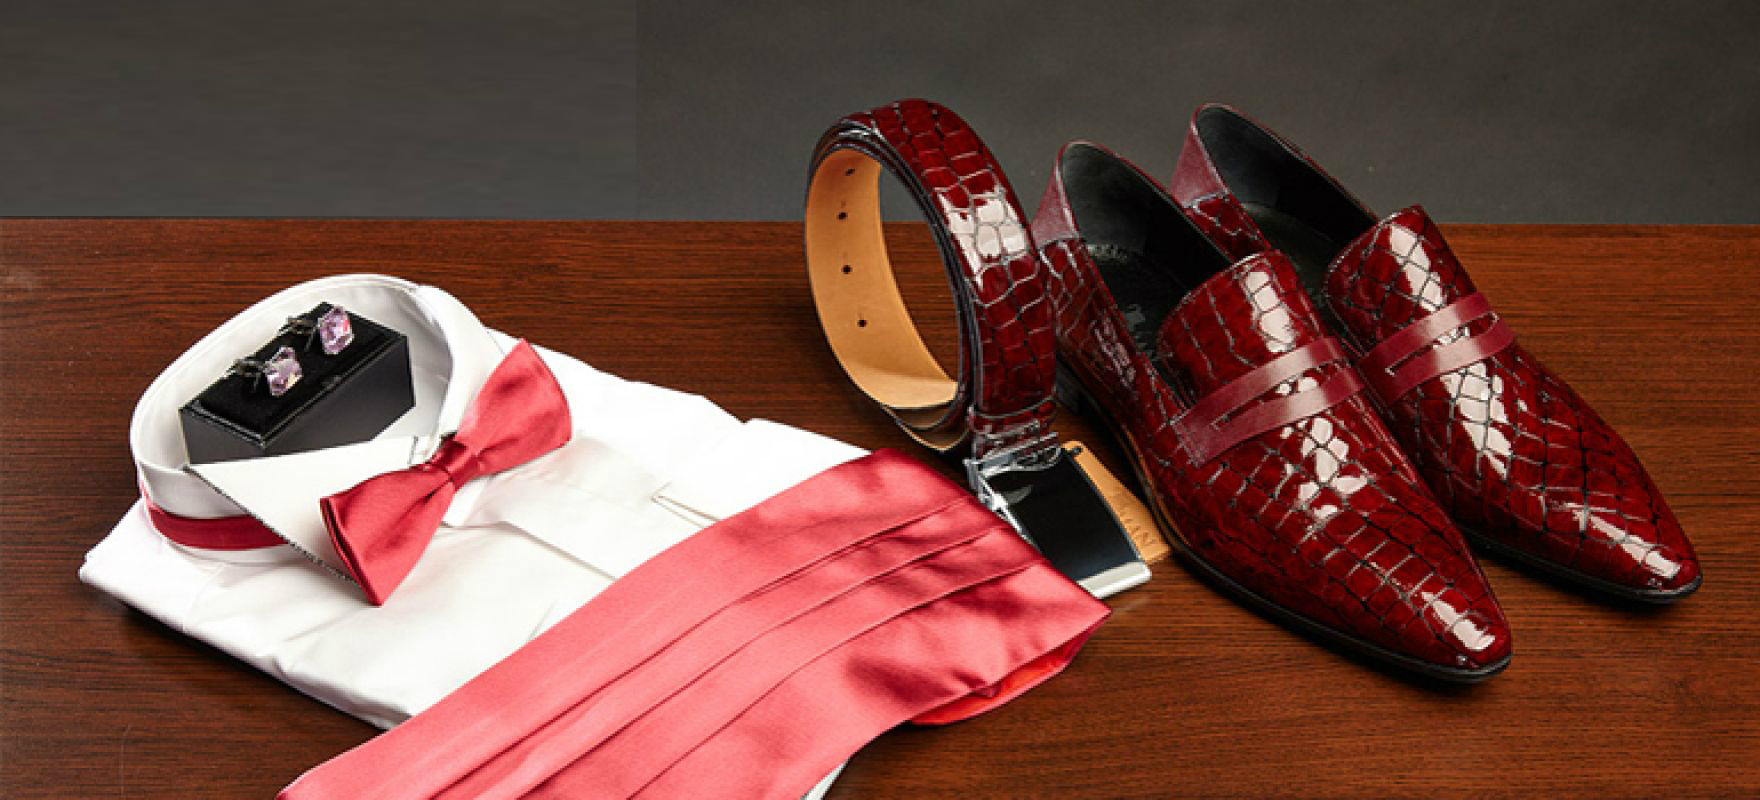 Top-Narman-Uomo-ceremony-accessories-for-grooms-1